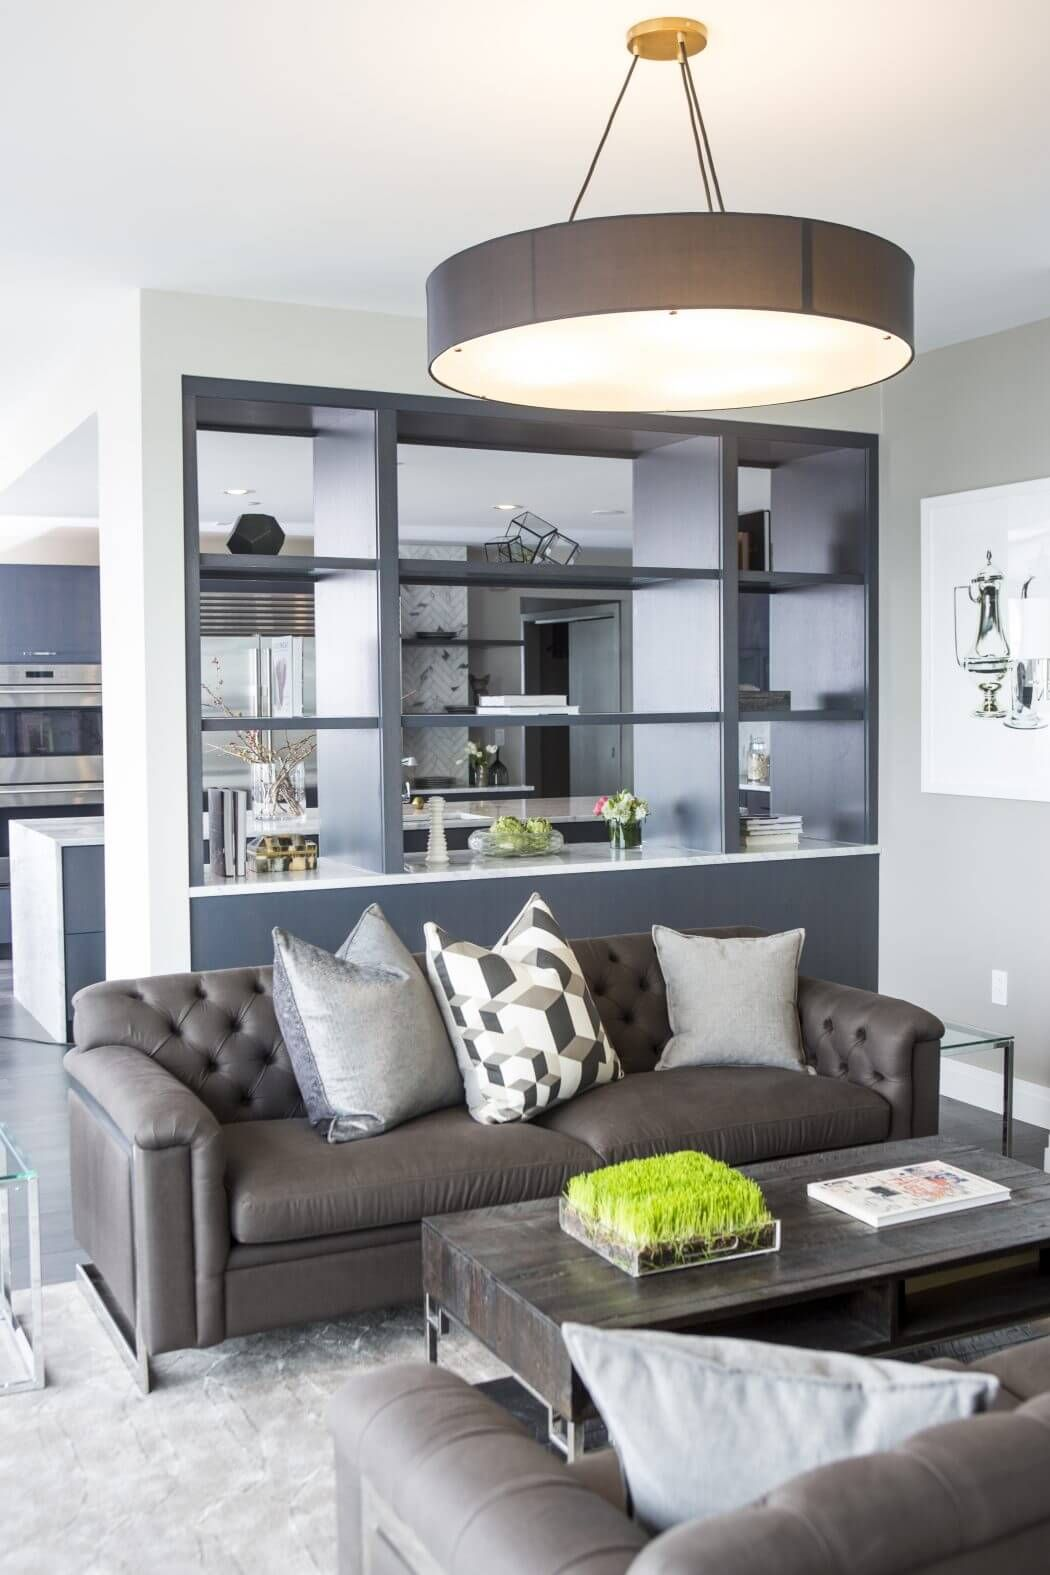 Small Modern Apartment Living Room Ideas: Luxury Condo By Turner Development Group